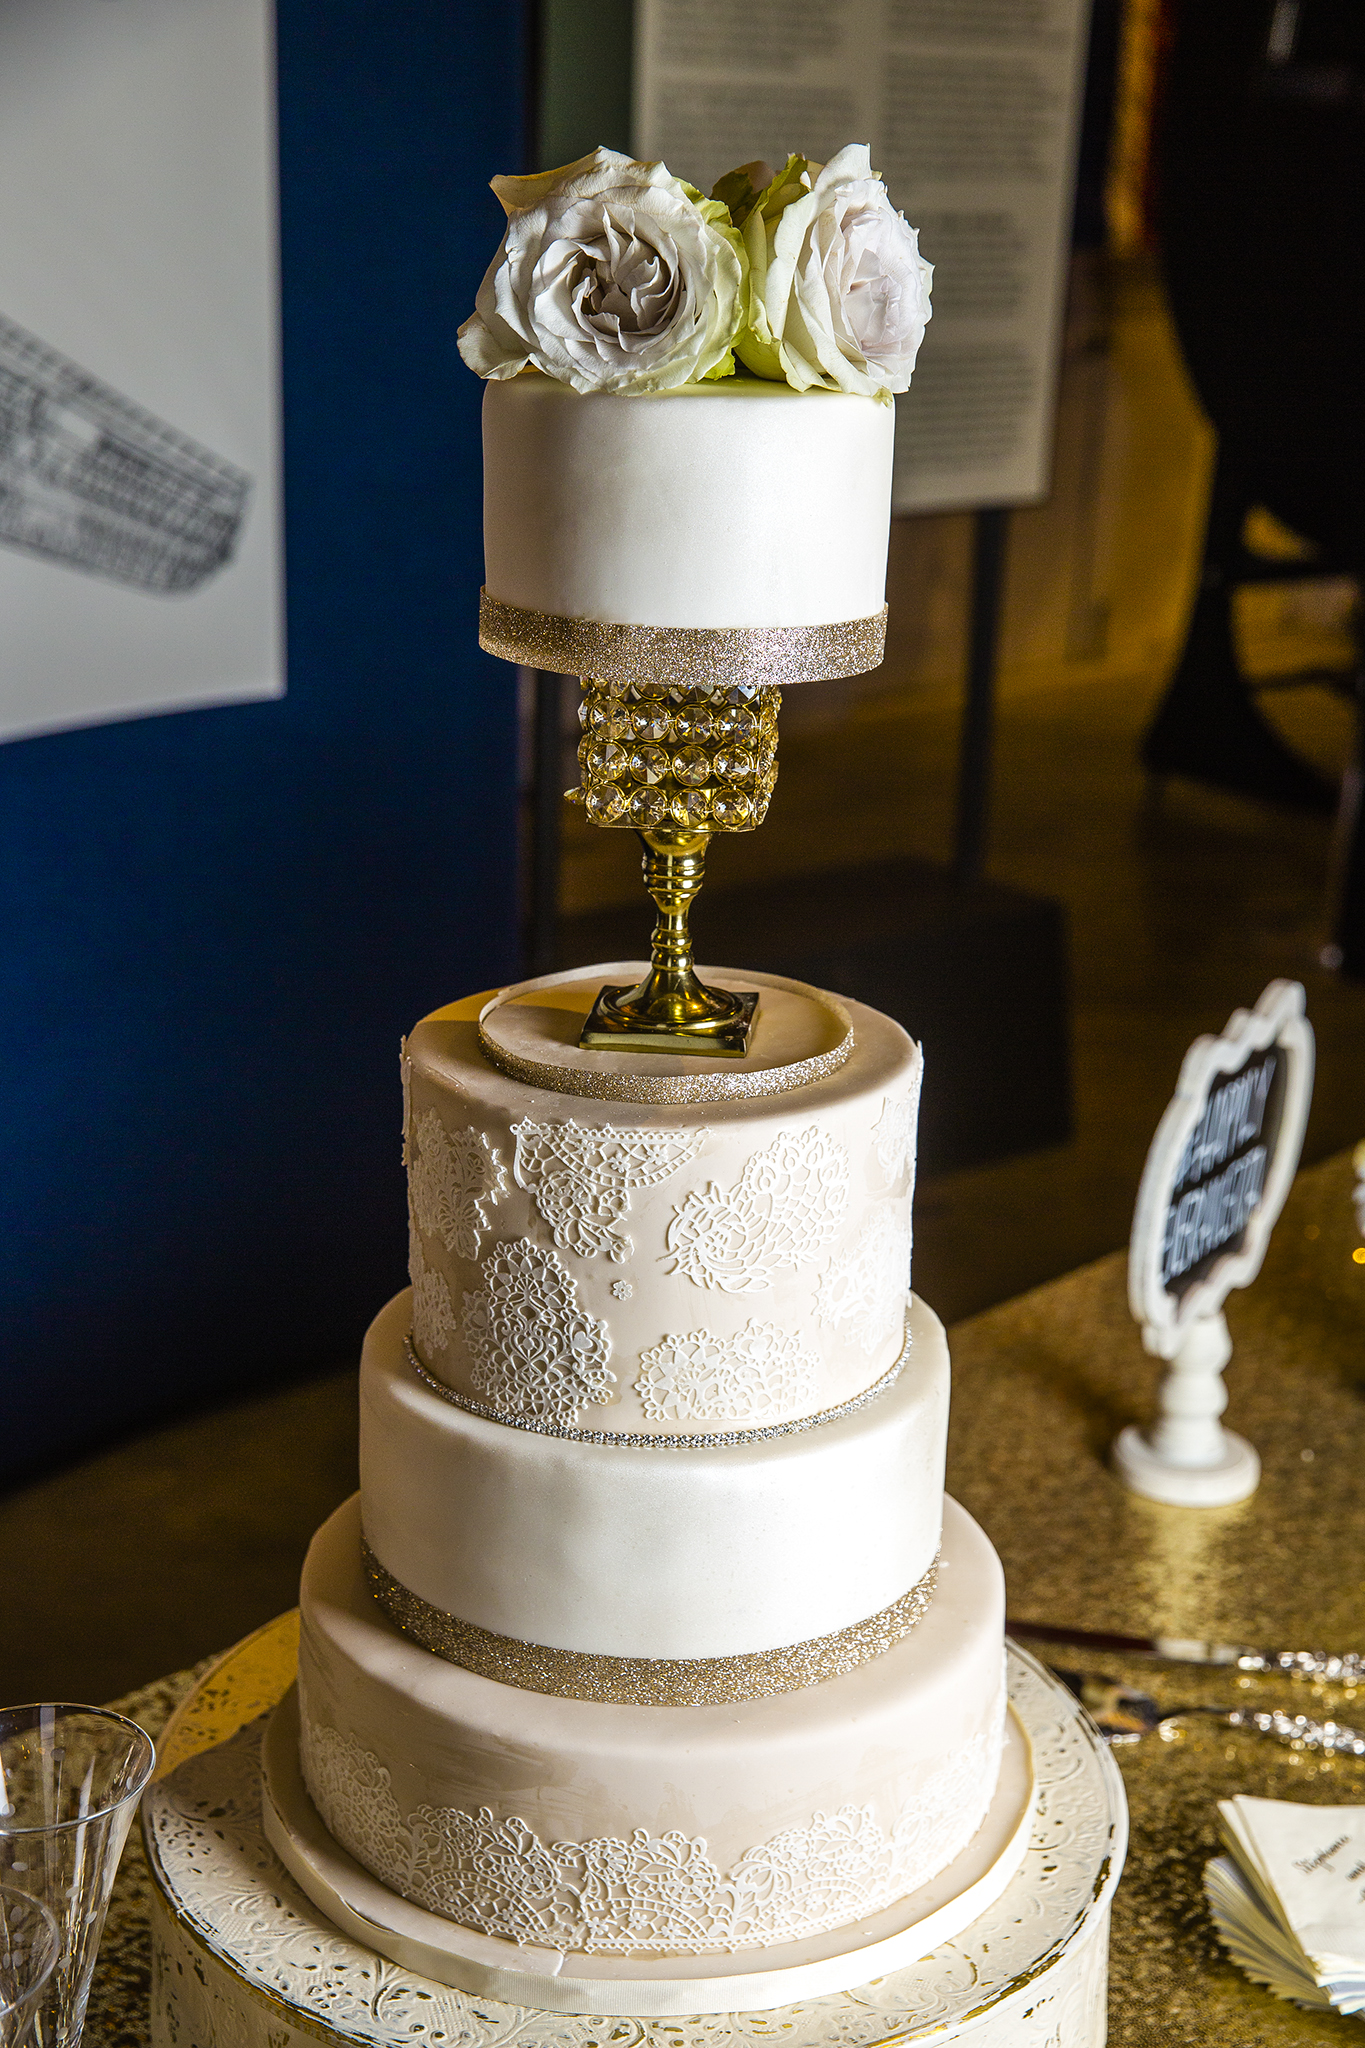 wedding cake, beautiful cake, wedding reception, made by the mother of the bride